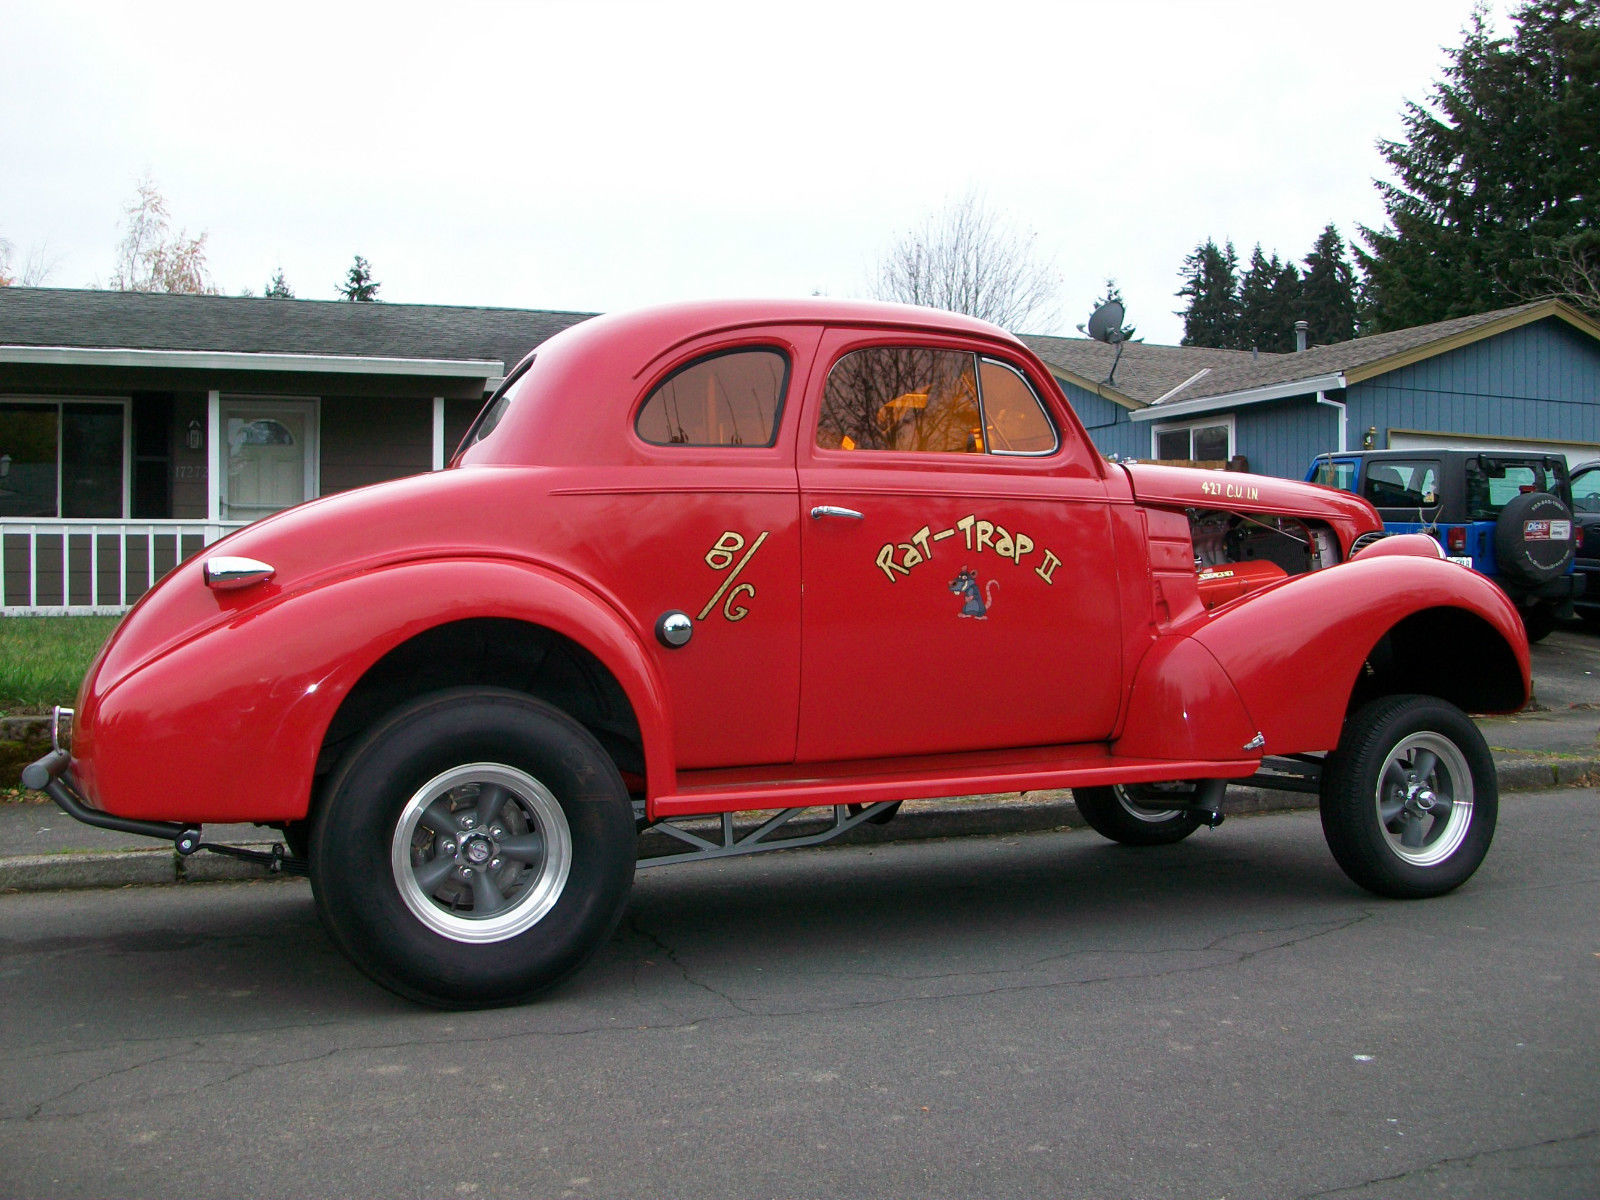 1939 Chevrolet Coupe Gasser Hotrod Streetrod Project For